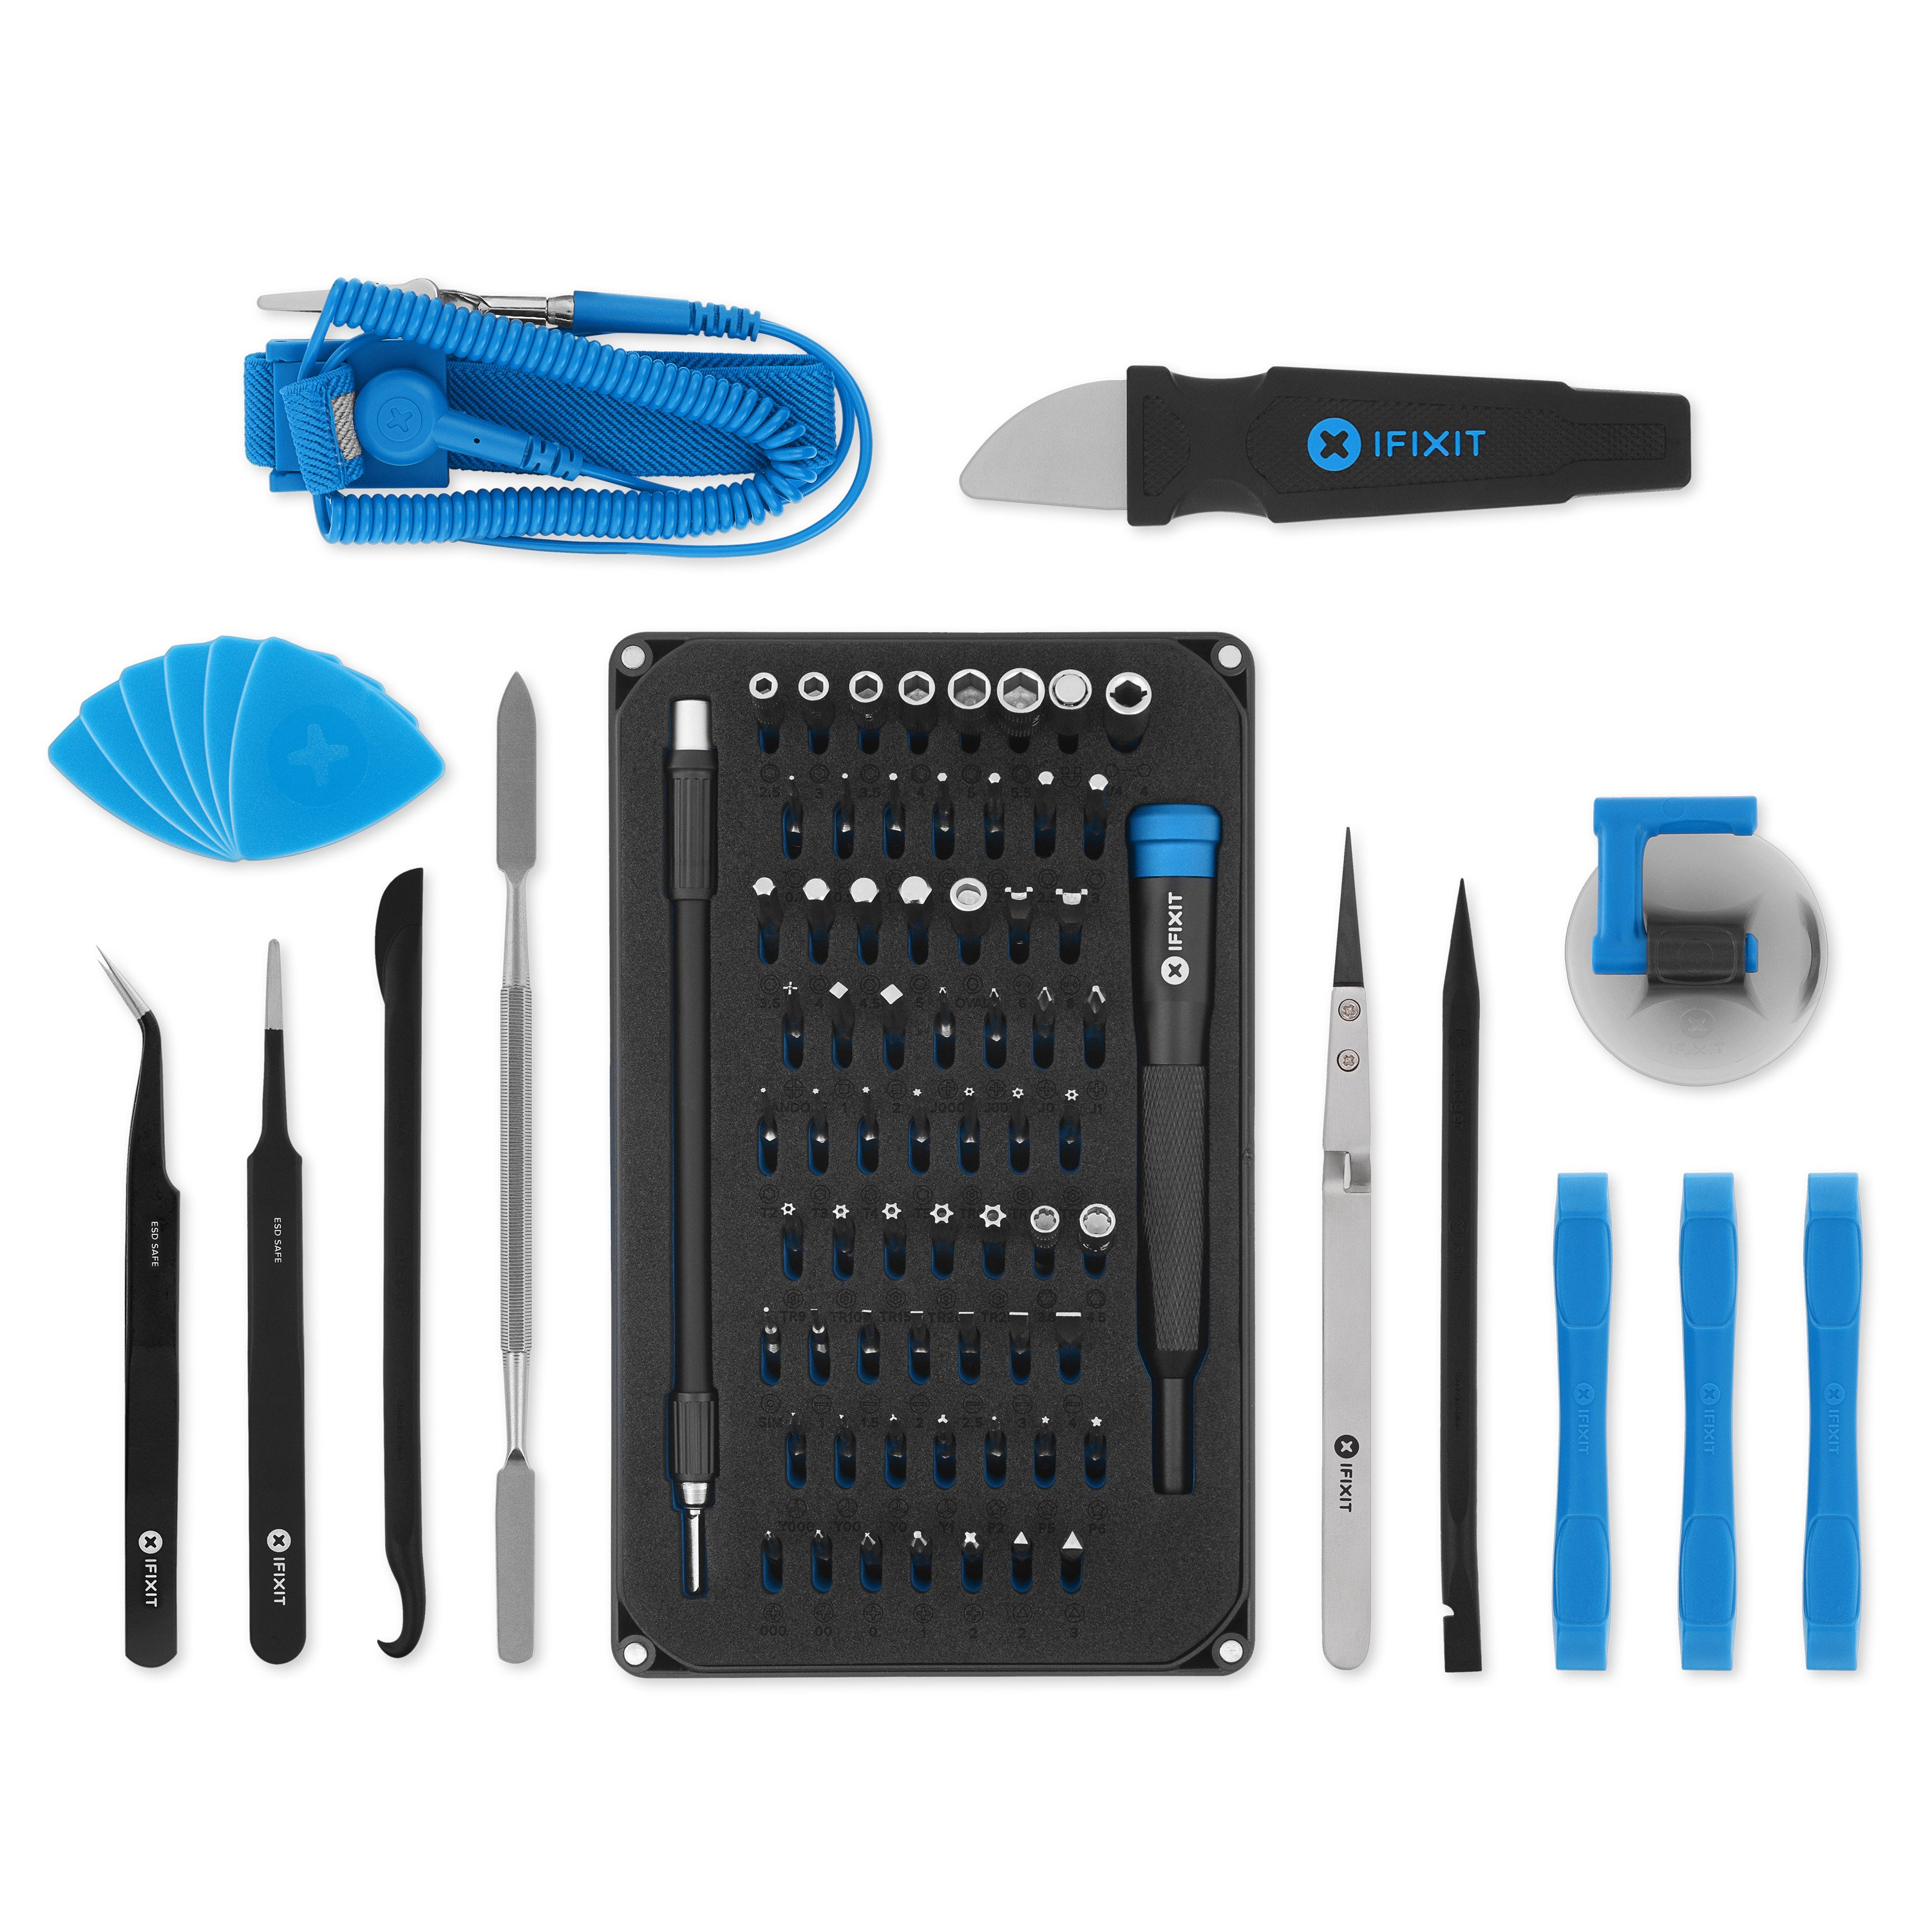 Pro Tech Toolkit Image